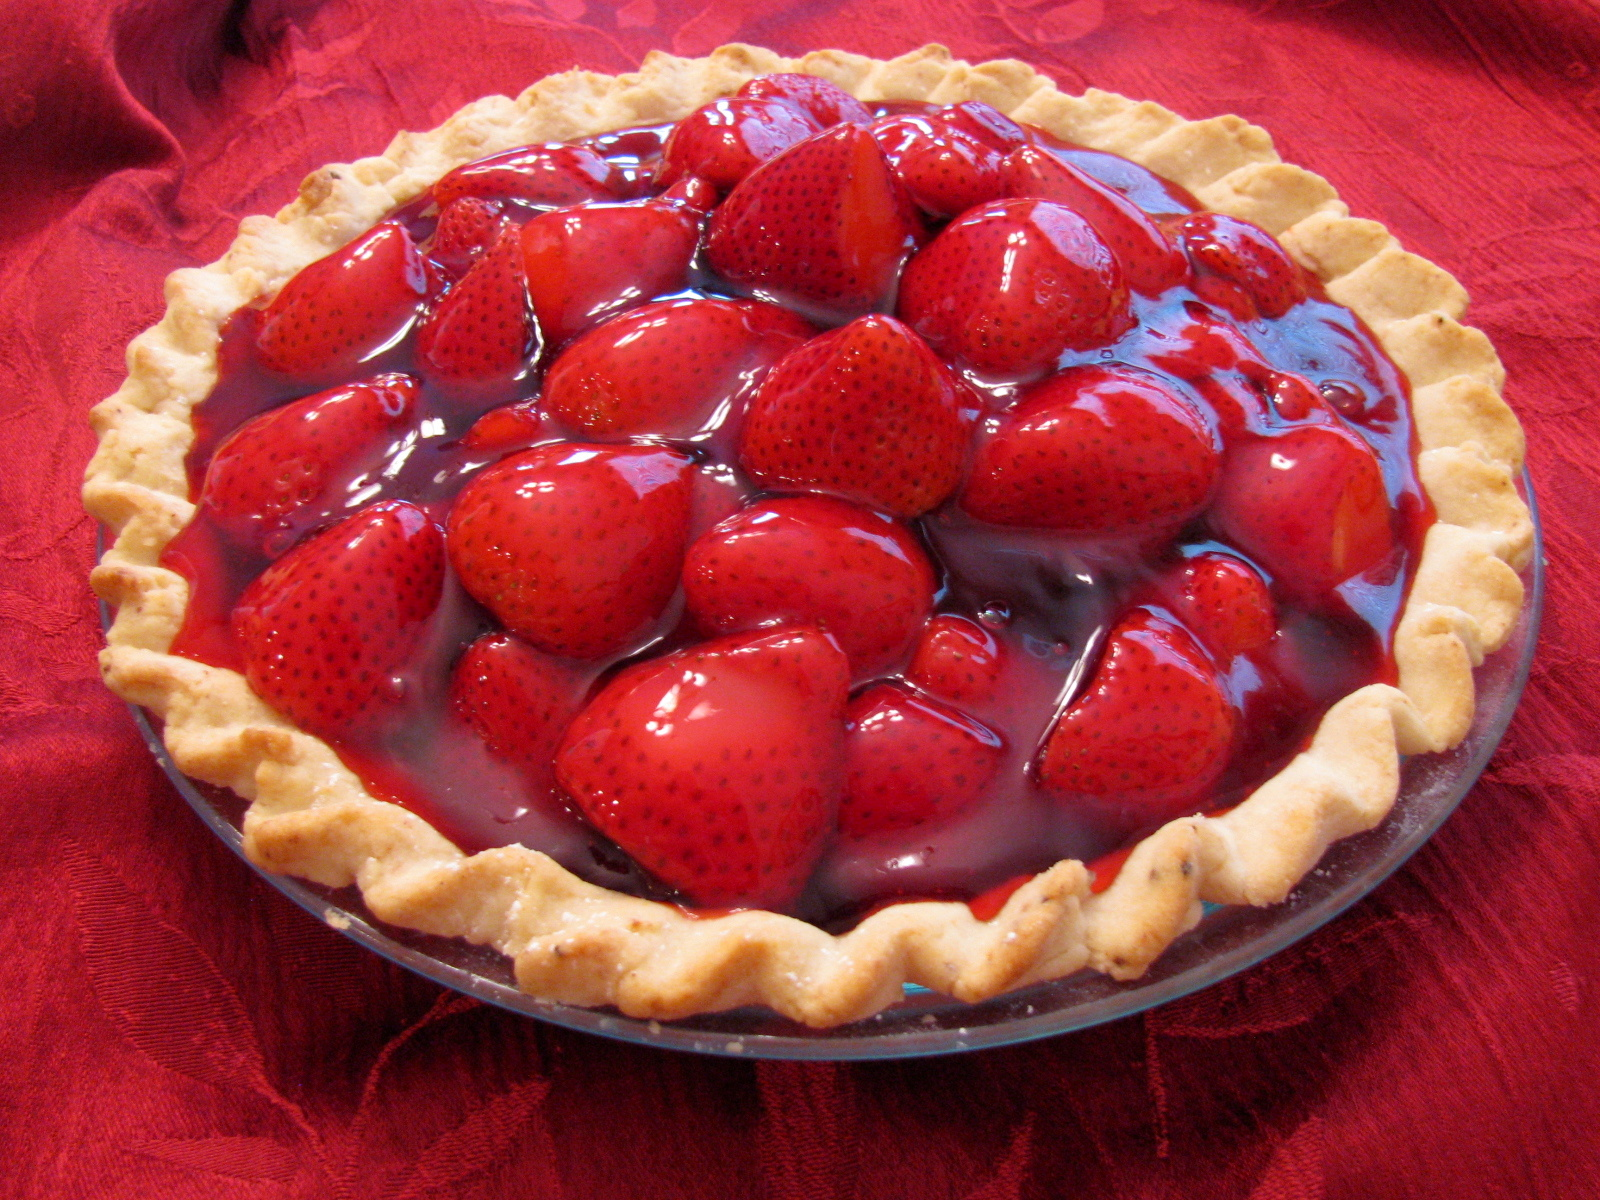 Fresh berries are combined with flour, sugar and cinnamon, piled into a prepared crust, and dotted with butter. Then on goes the top crust, and the pie is slipped into a hot oven until the filling bubbles and the crust turns a golden brown.